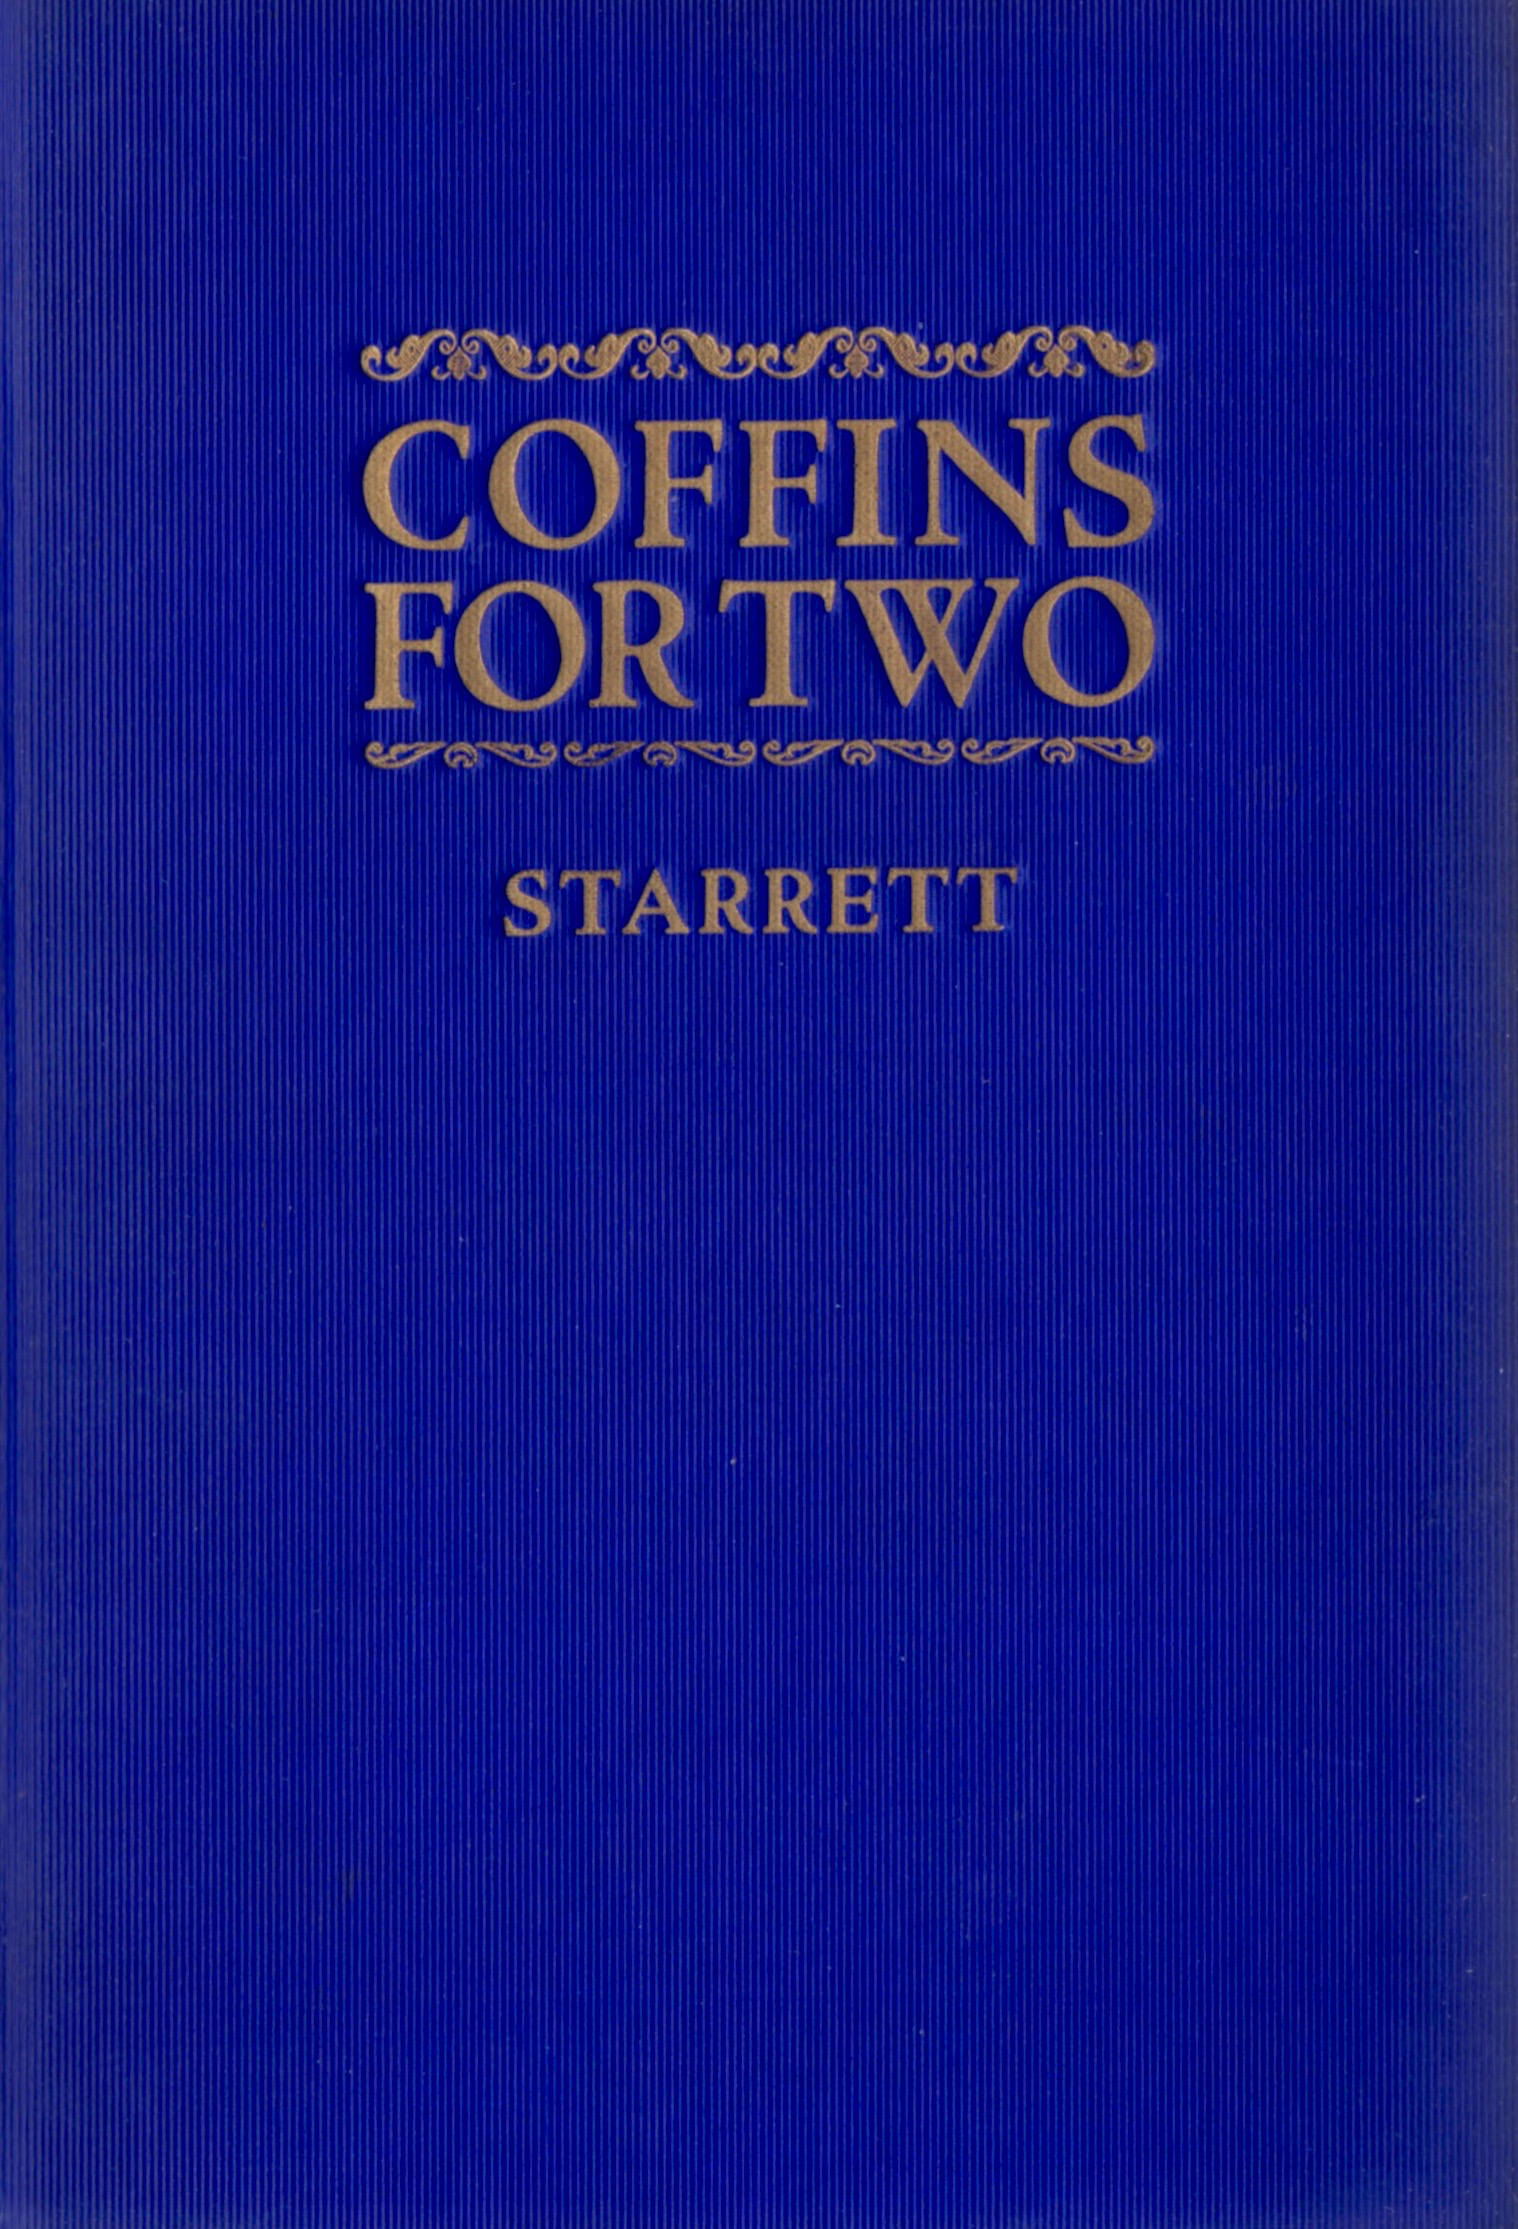 The cover for  Coffins for Two  by Starrett. Published in 1924 by Covici-McGee Co. of Chicago.